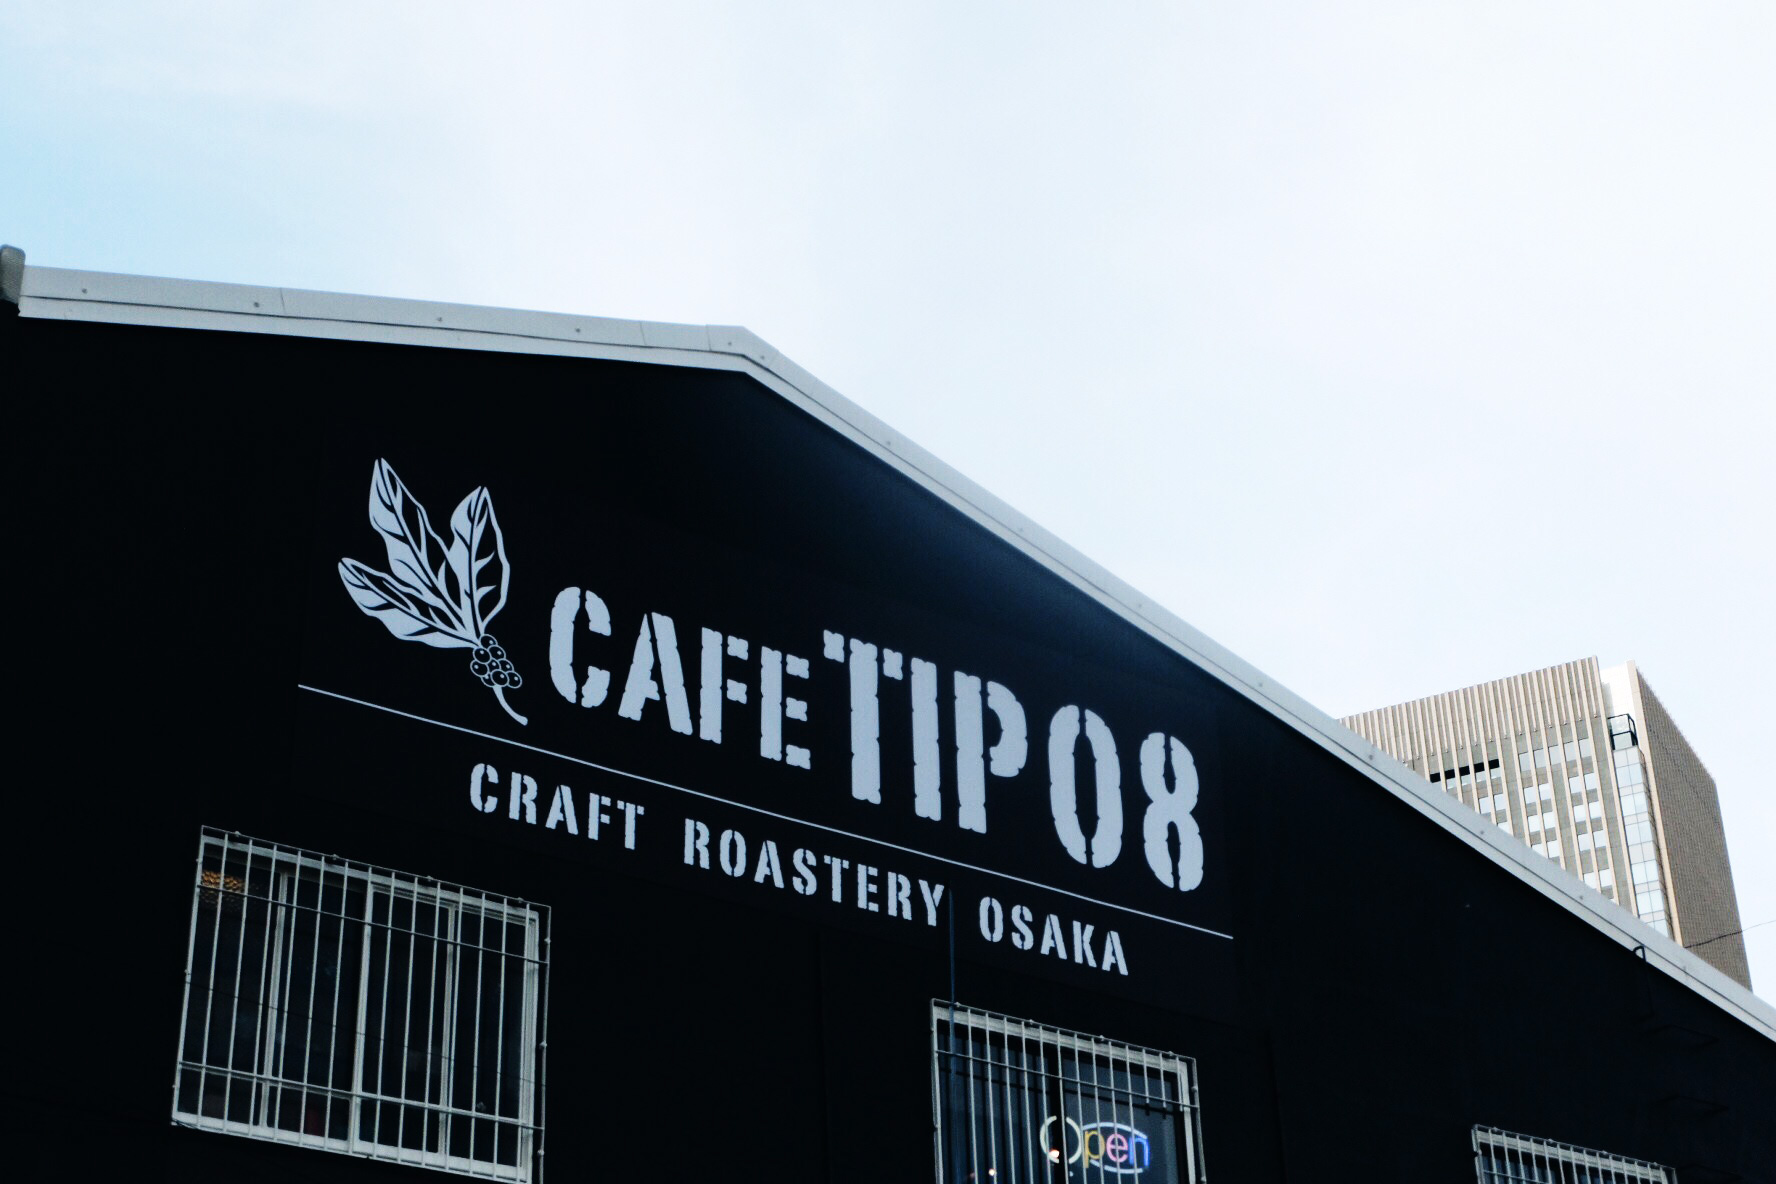 CAFE TIPO8(カフェ チーポ・オイト)